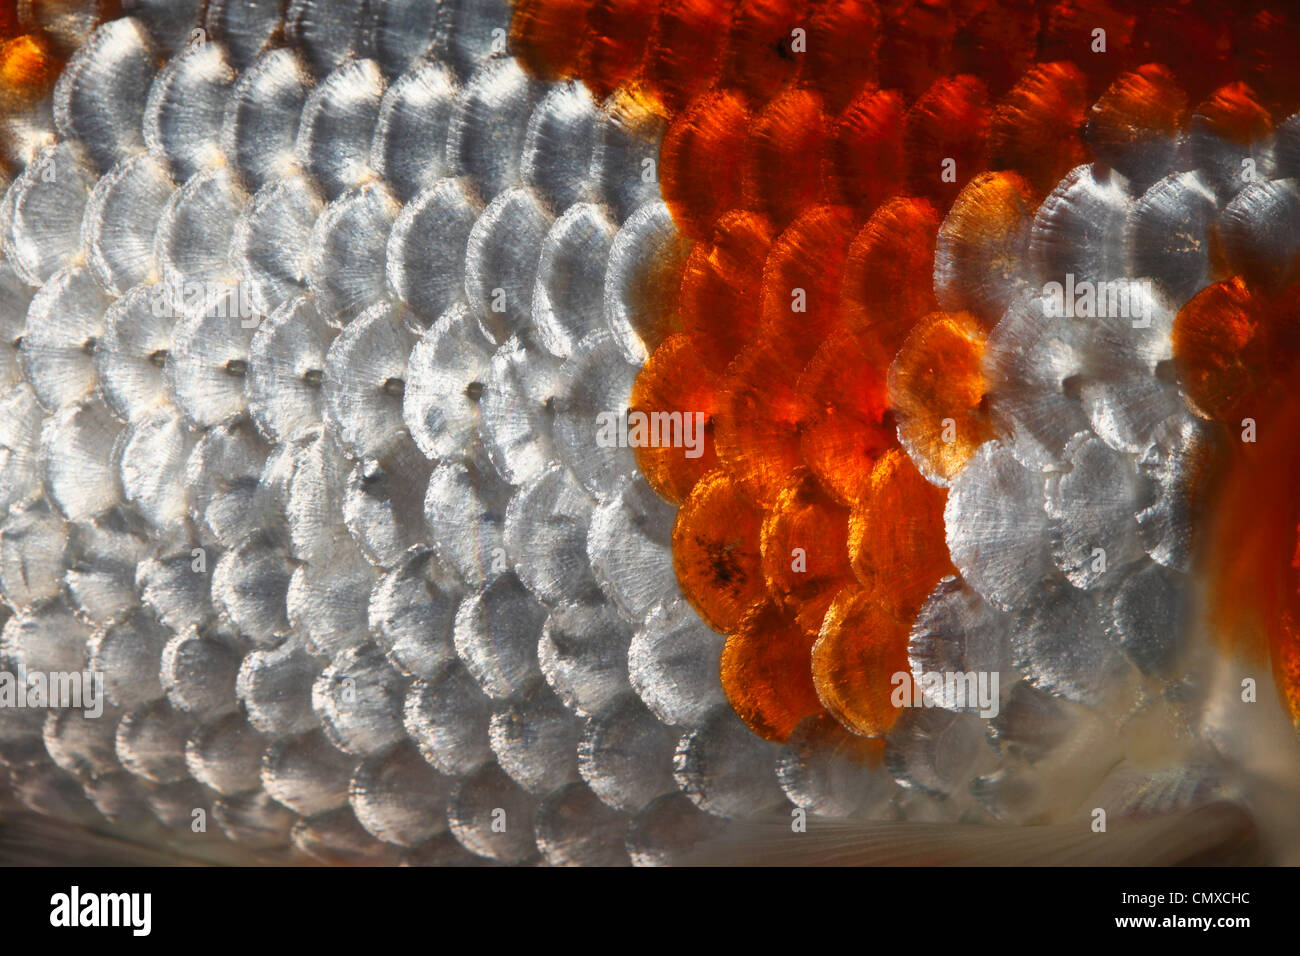 Extreme close up of fish scales - Stock Image